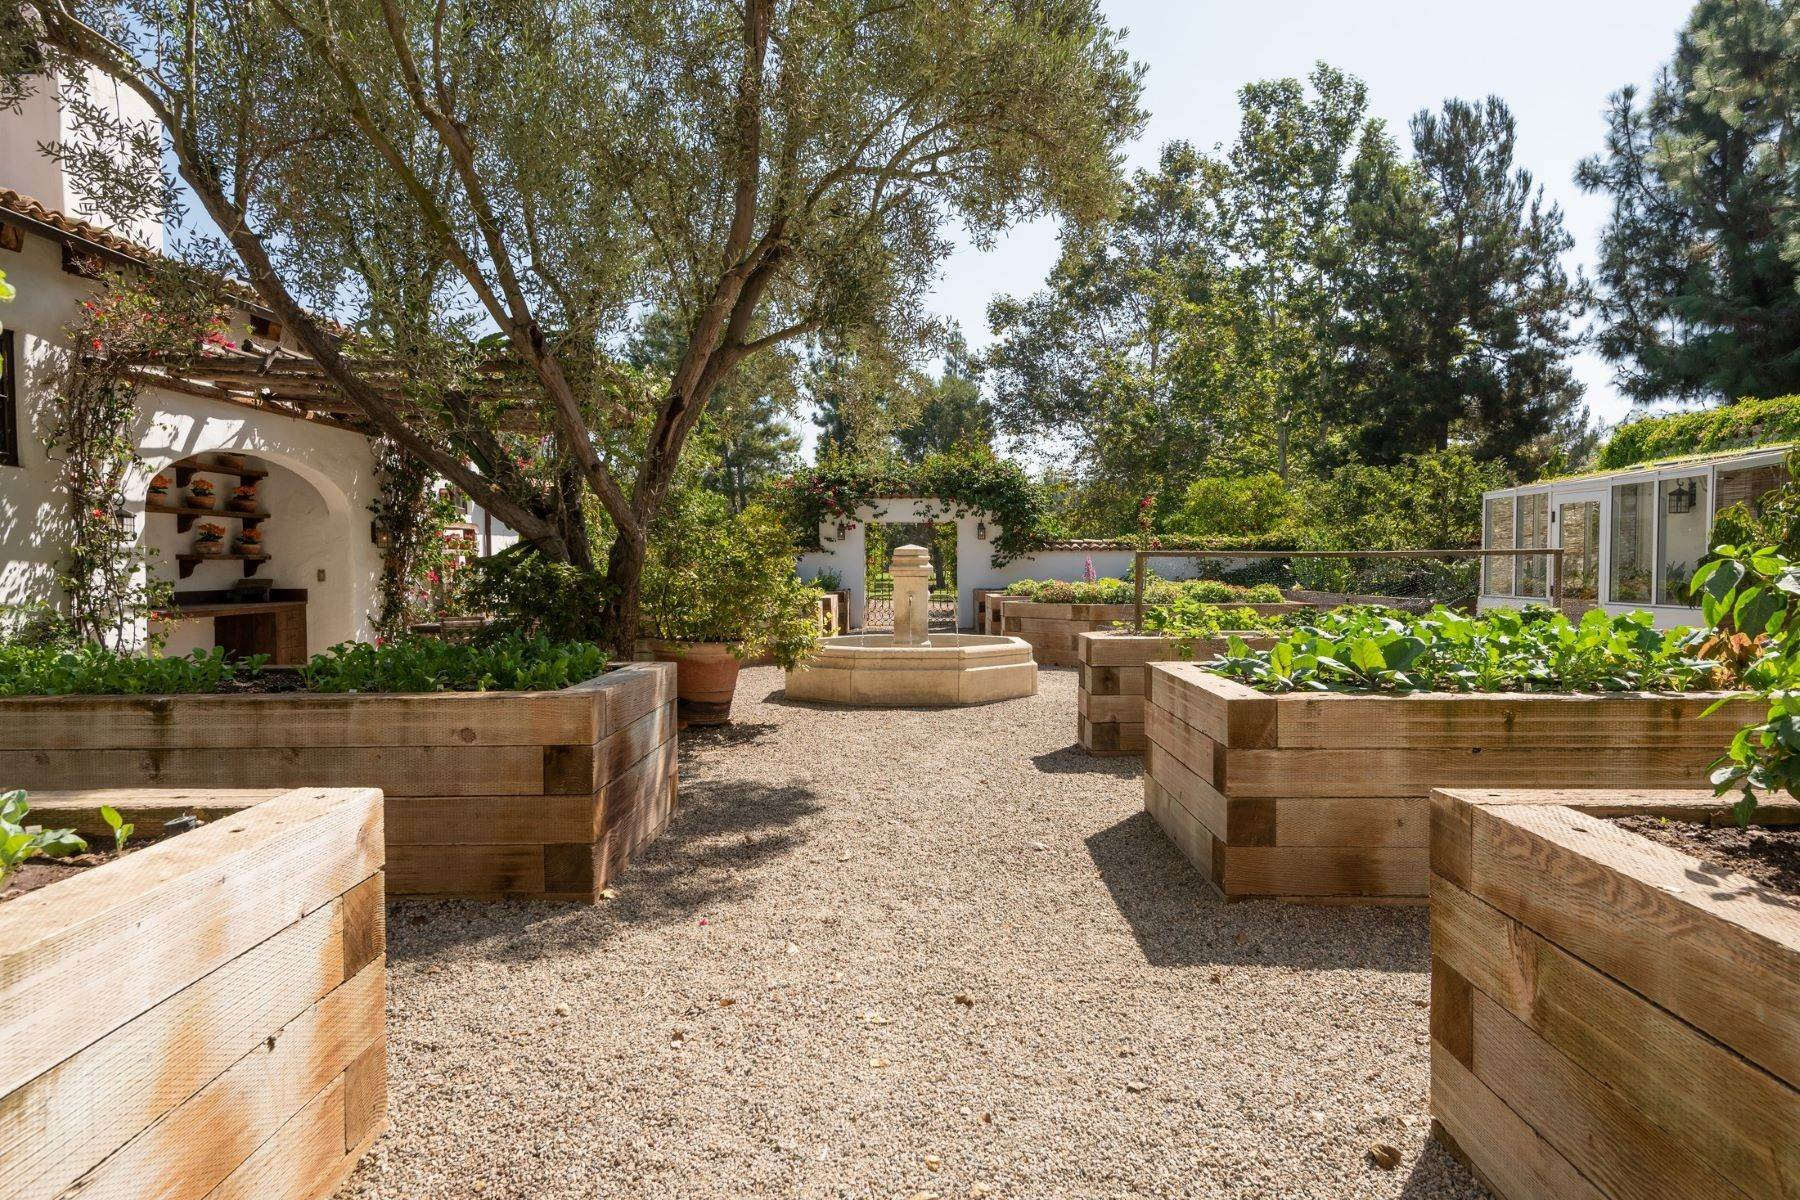 19. Farm and Ranch Properties for Sale at 16401 Calle Feliz, Rancho Santa Fe, Ca, 92067 16401 Calle Feliz Rancho Santa Fe, California 92067 United States